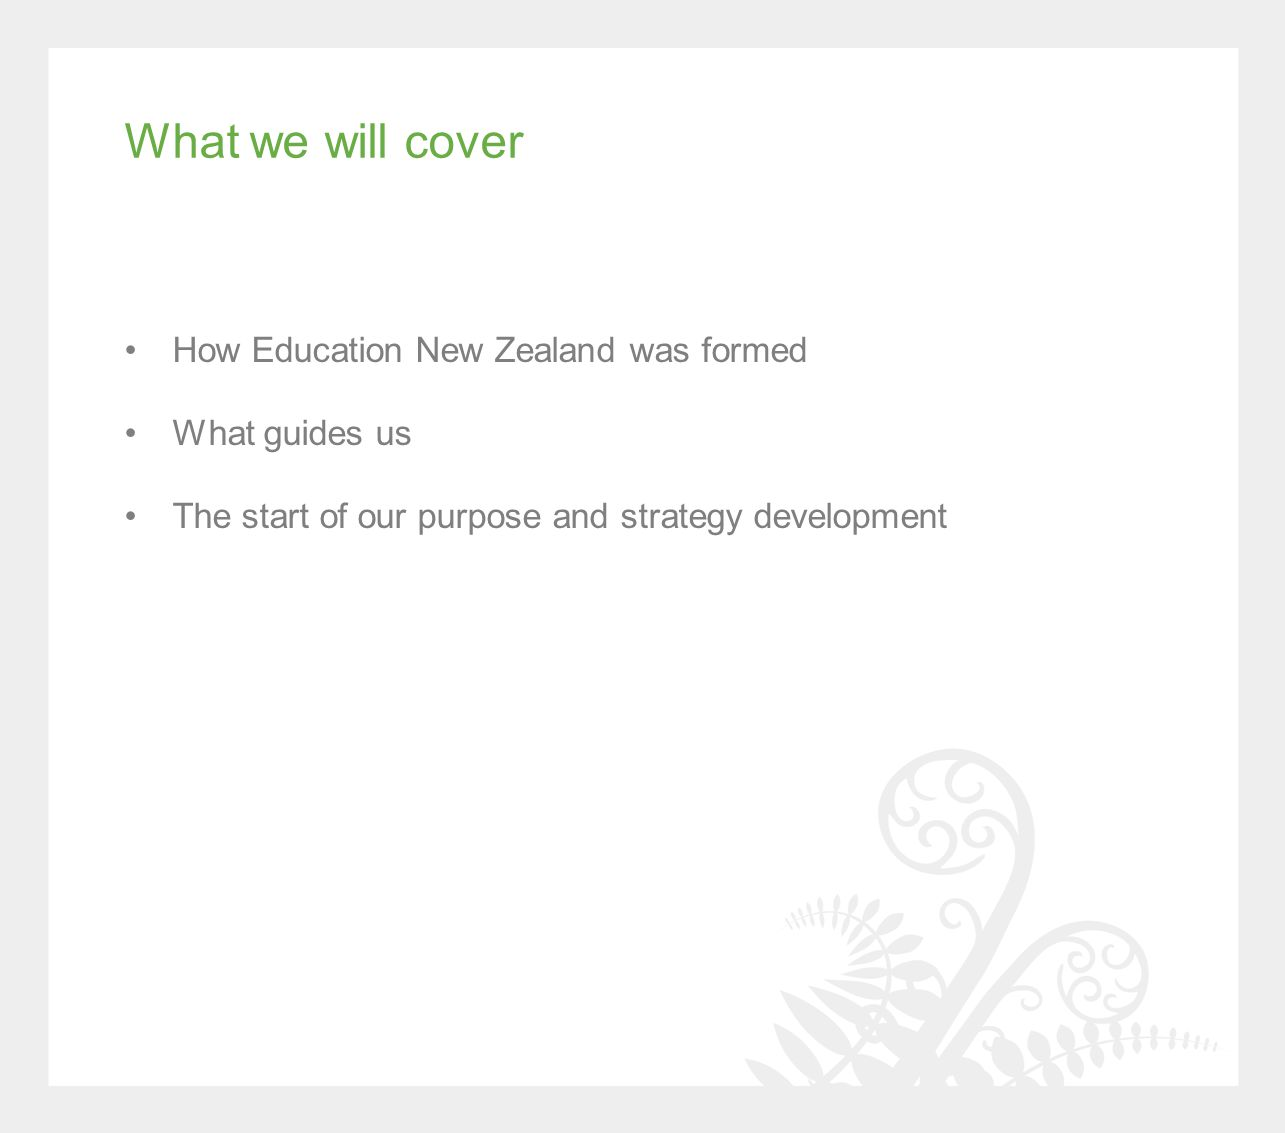 Overview of Export Education Industry Key contributor to NZ economy 5th largest export industry to NZ Contributes NZ$2.3bn annually to NZ economy Every sector benefits - Primary school to Higher Education International students contribute to social, economic and cultural growth of NZ NZ education system is highly regarded in many countries NZ qualifications are recognised by 50 countries through the Lisbon convention